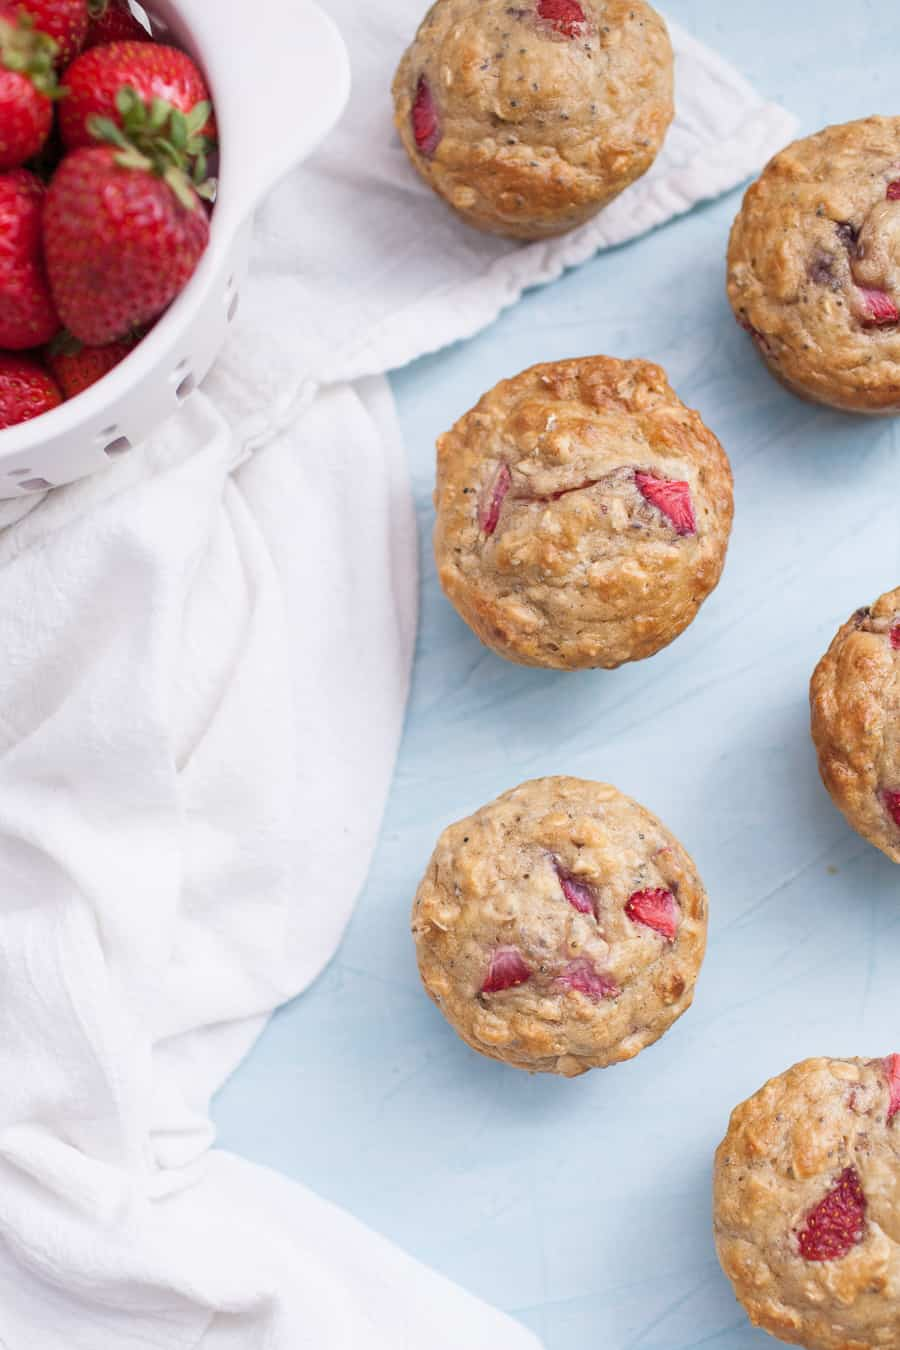 No Sugar Added Strawberry Chia Seed Muffins are such a fun treat to have on hand this week! They are so easy to make, no fancy ingredients required, even though they are sugar free! These no sugar added muffins get their sweetness from applesauce and strawberries, which are really the star of the show. Pack in some extra protein with chia seeds and these muffins are a true powerhouse.